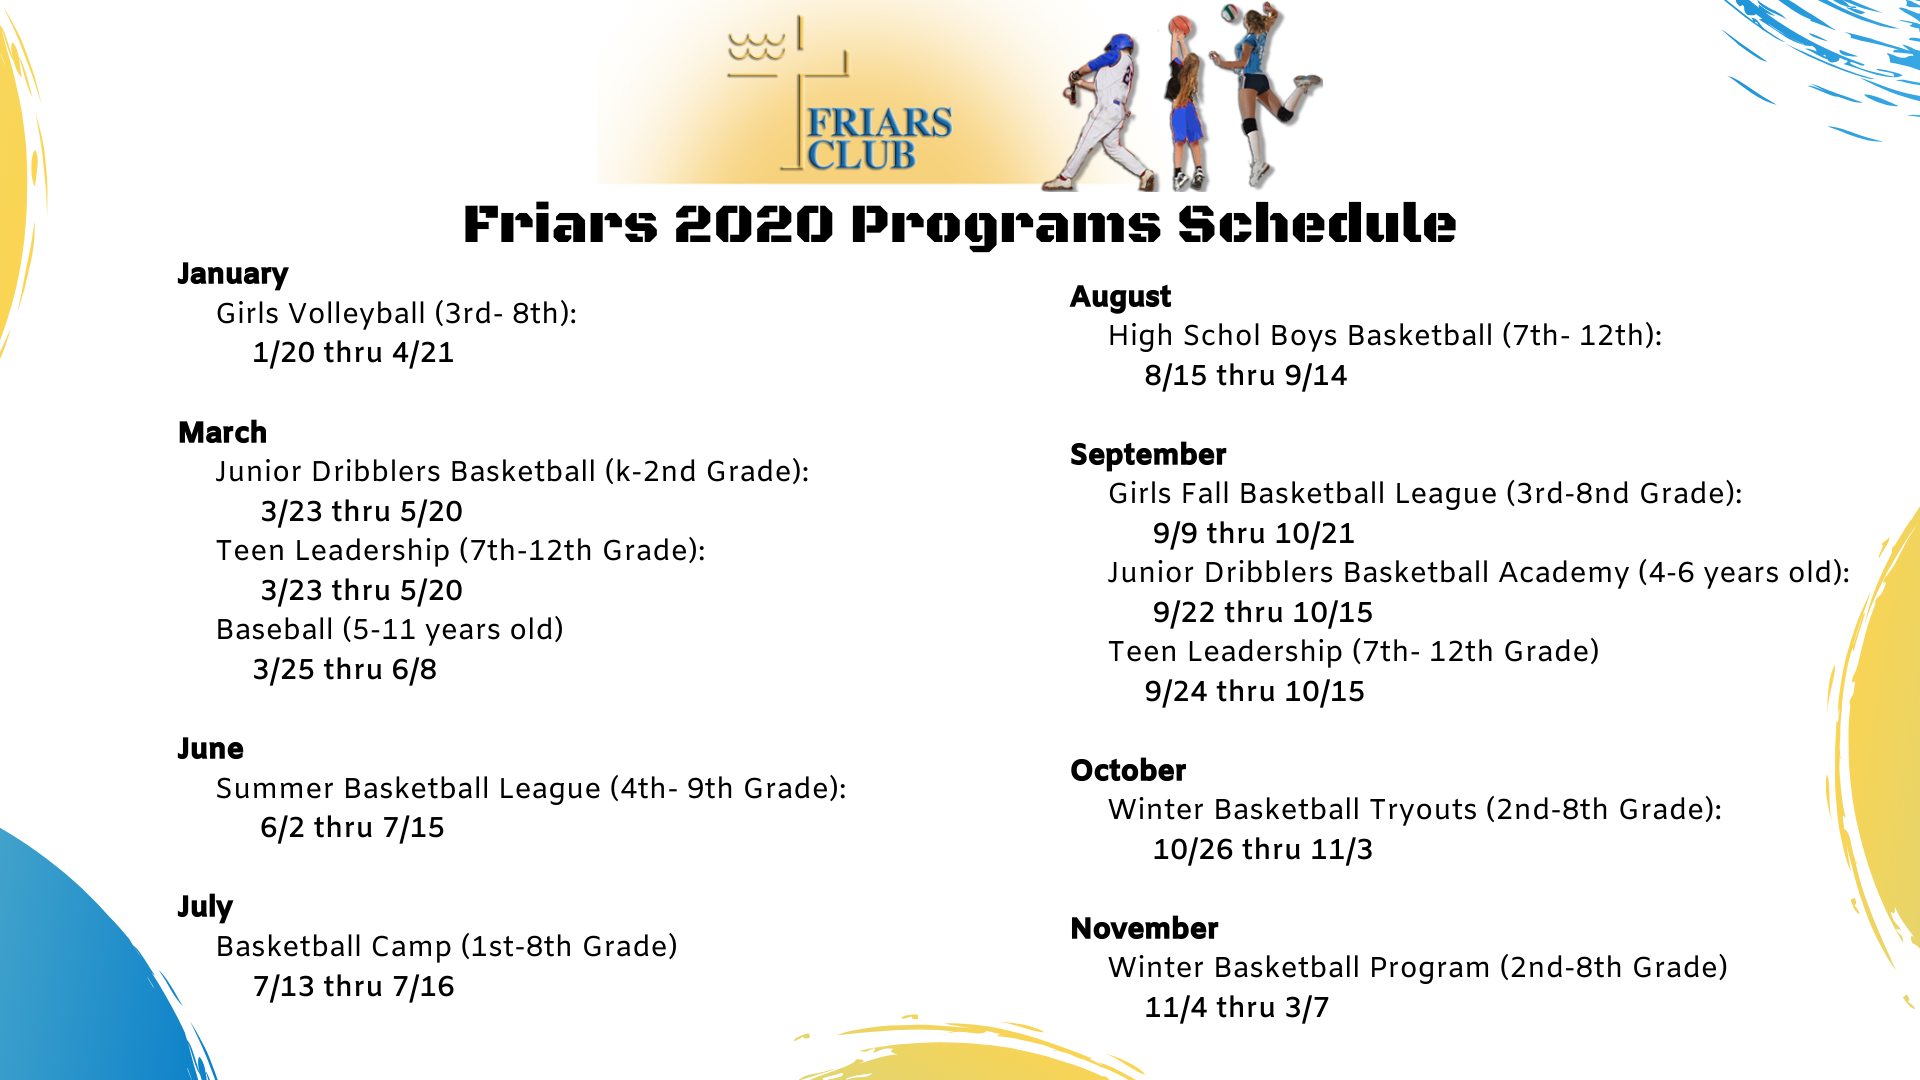 Friars 2019 Programs Schedule